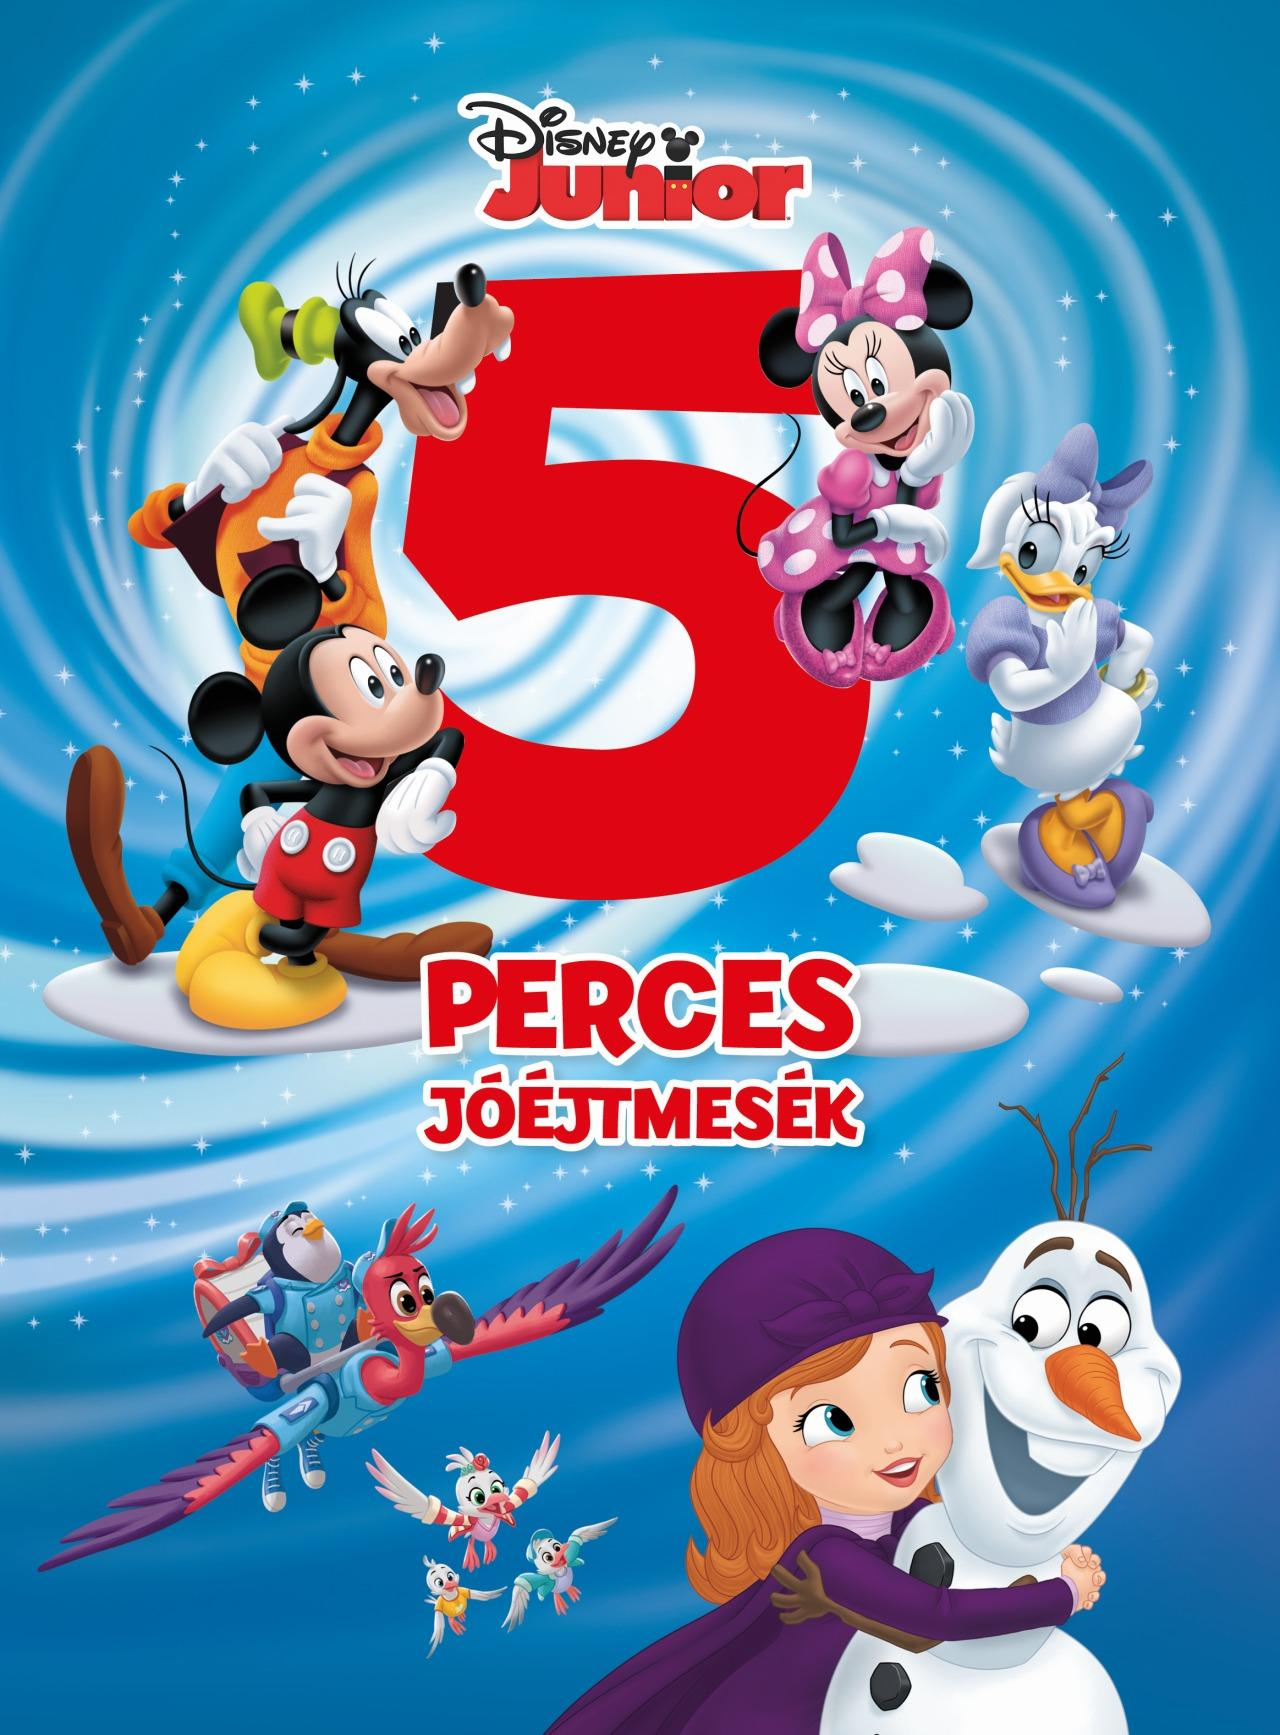 - - Disney Junior - 5 perces jóéjtmesék